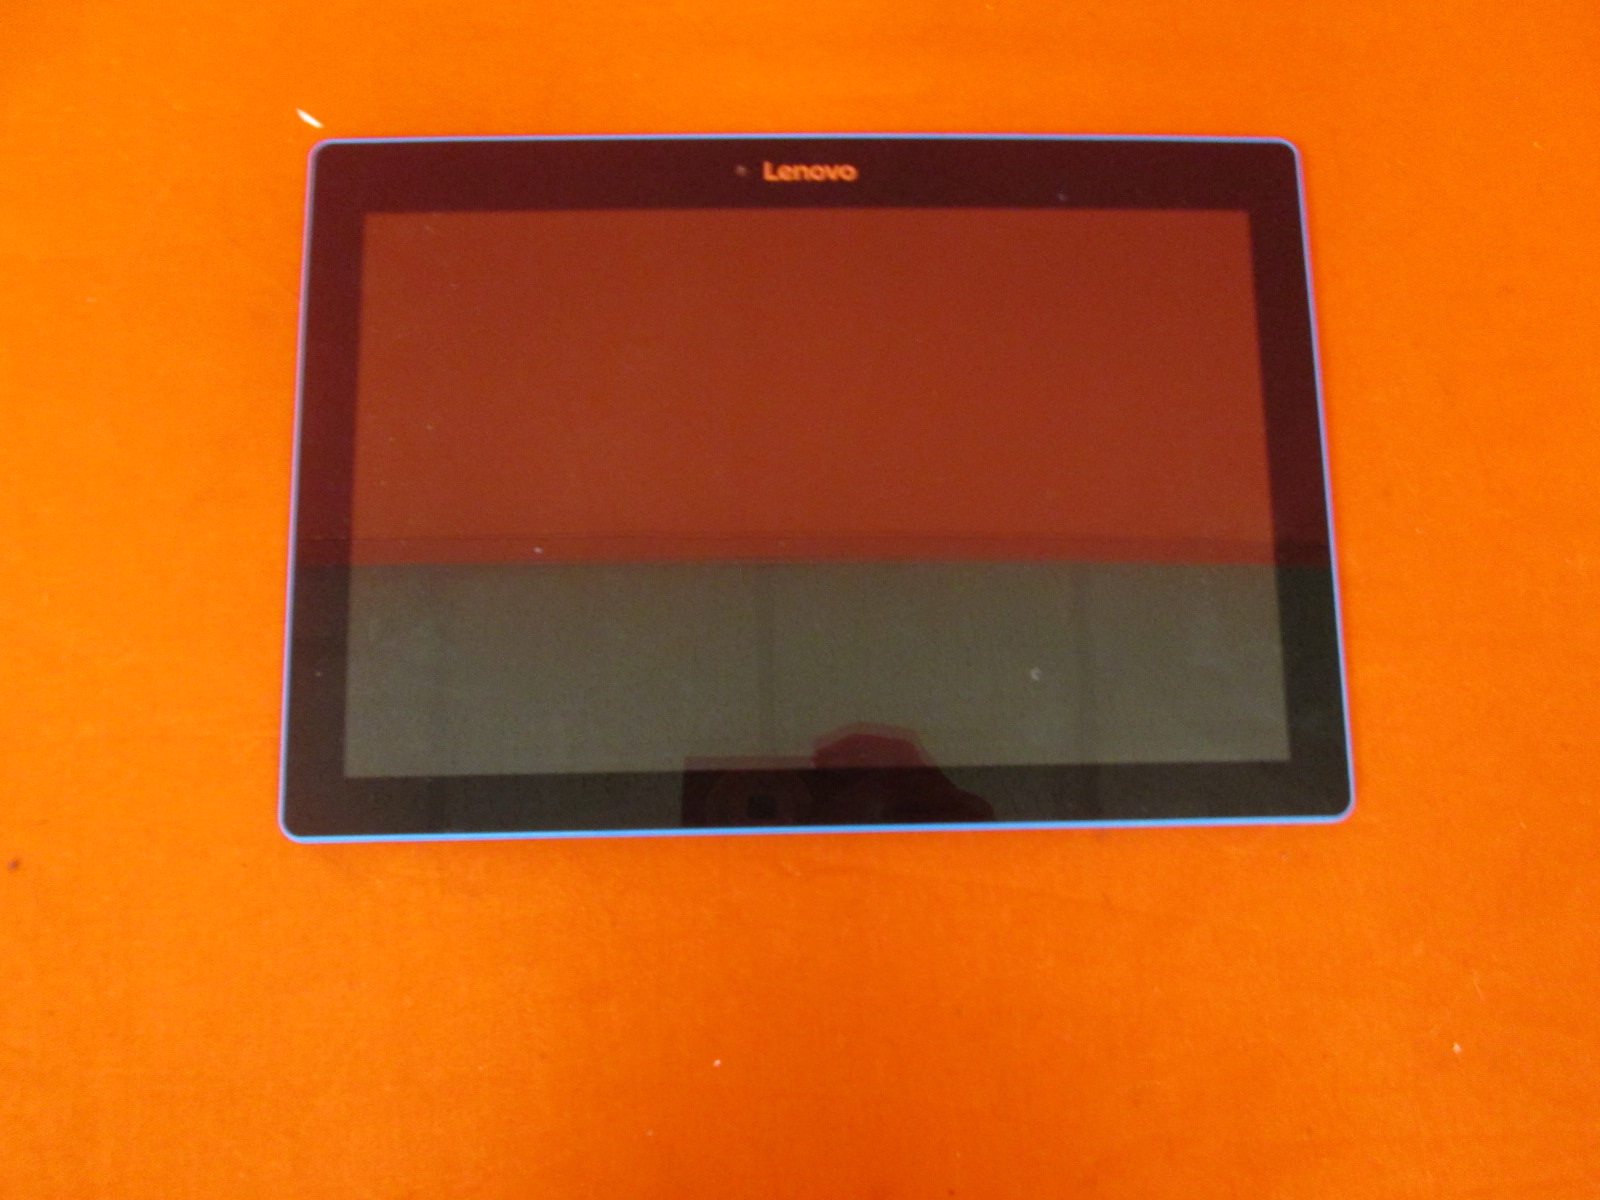 Broken Lenovo Tab 10 10-inch Android Tablet Qualcomm Snapdragon 210